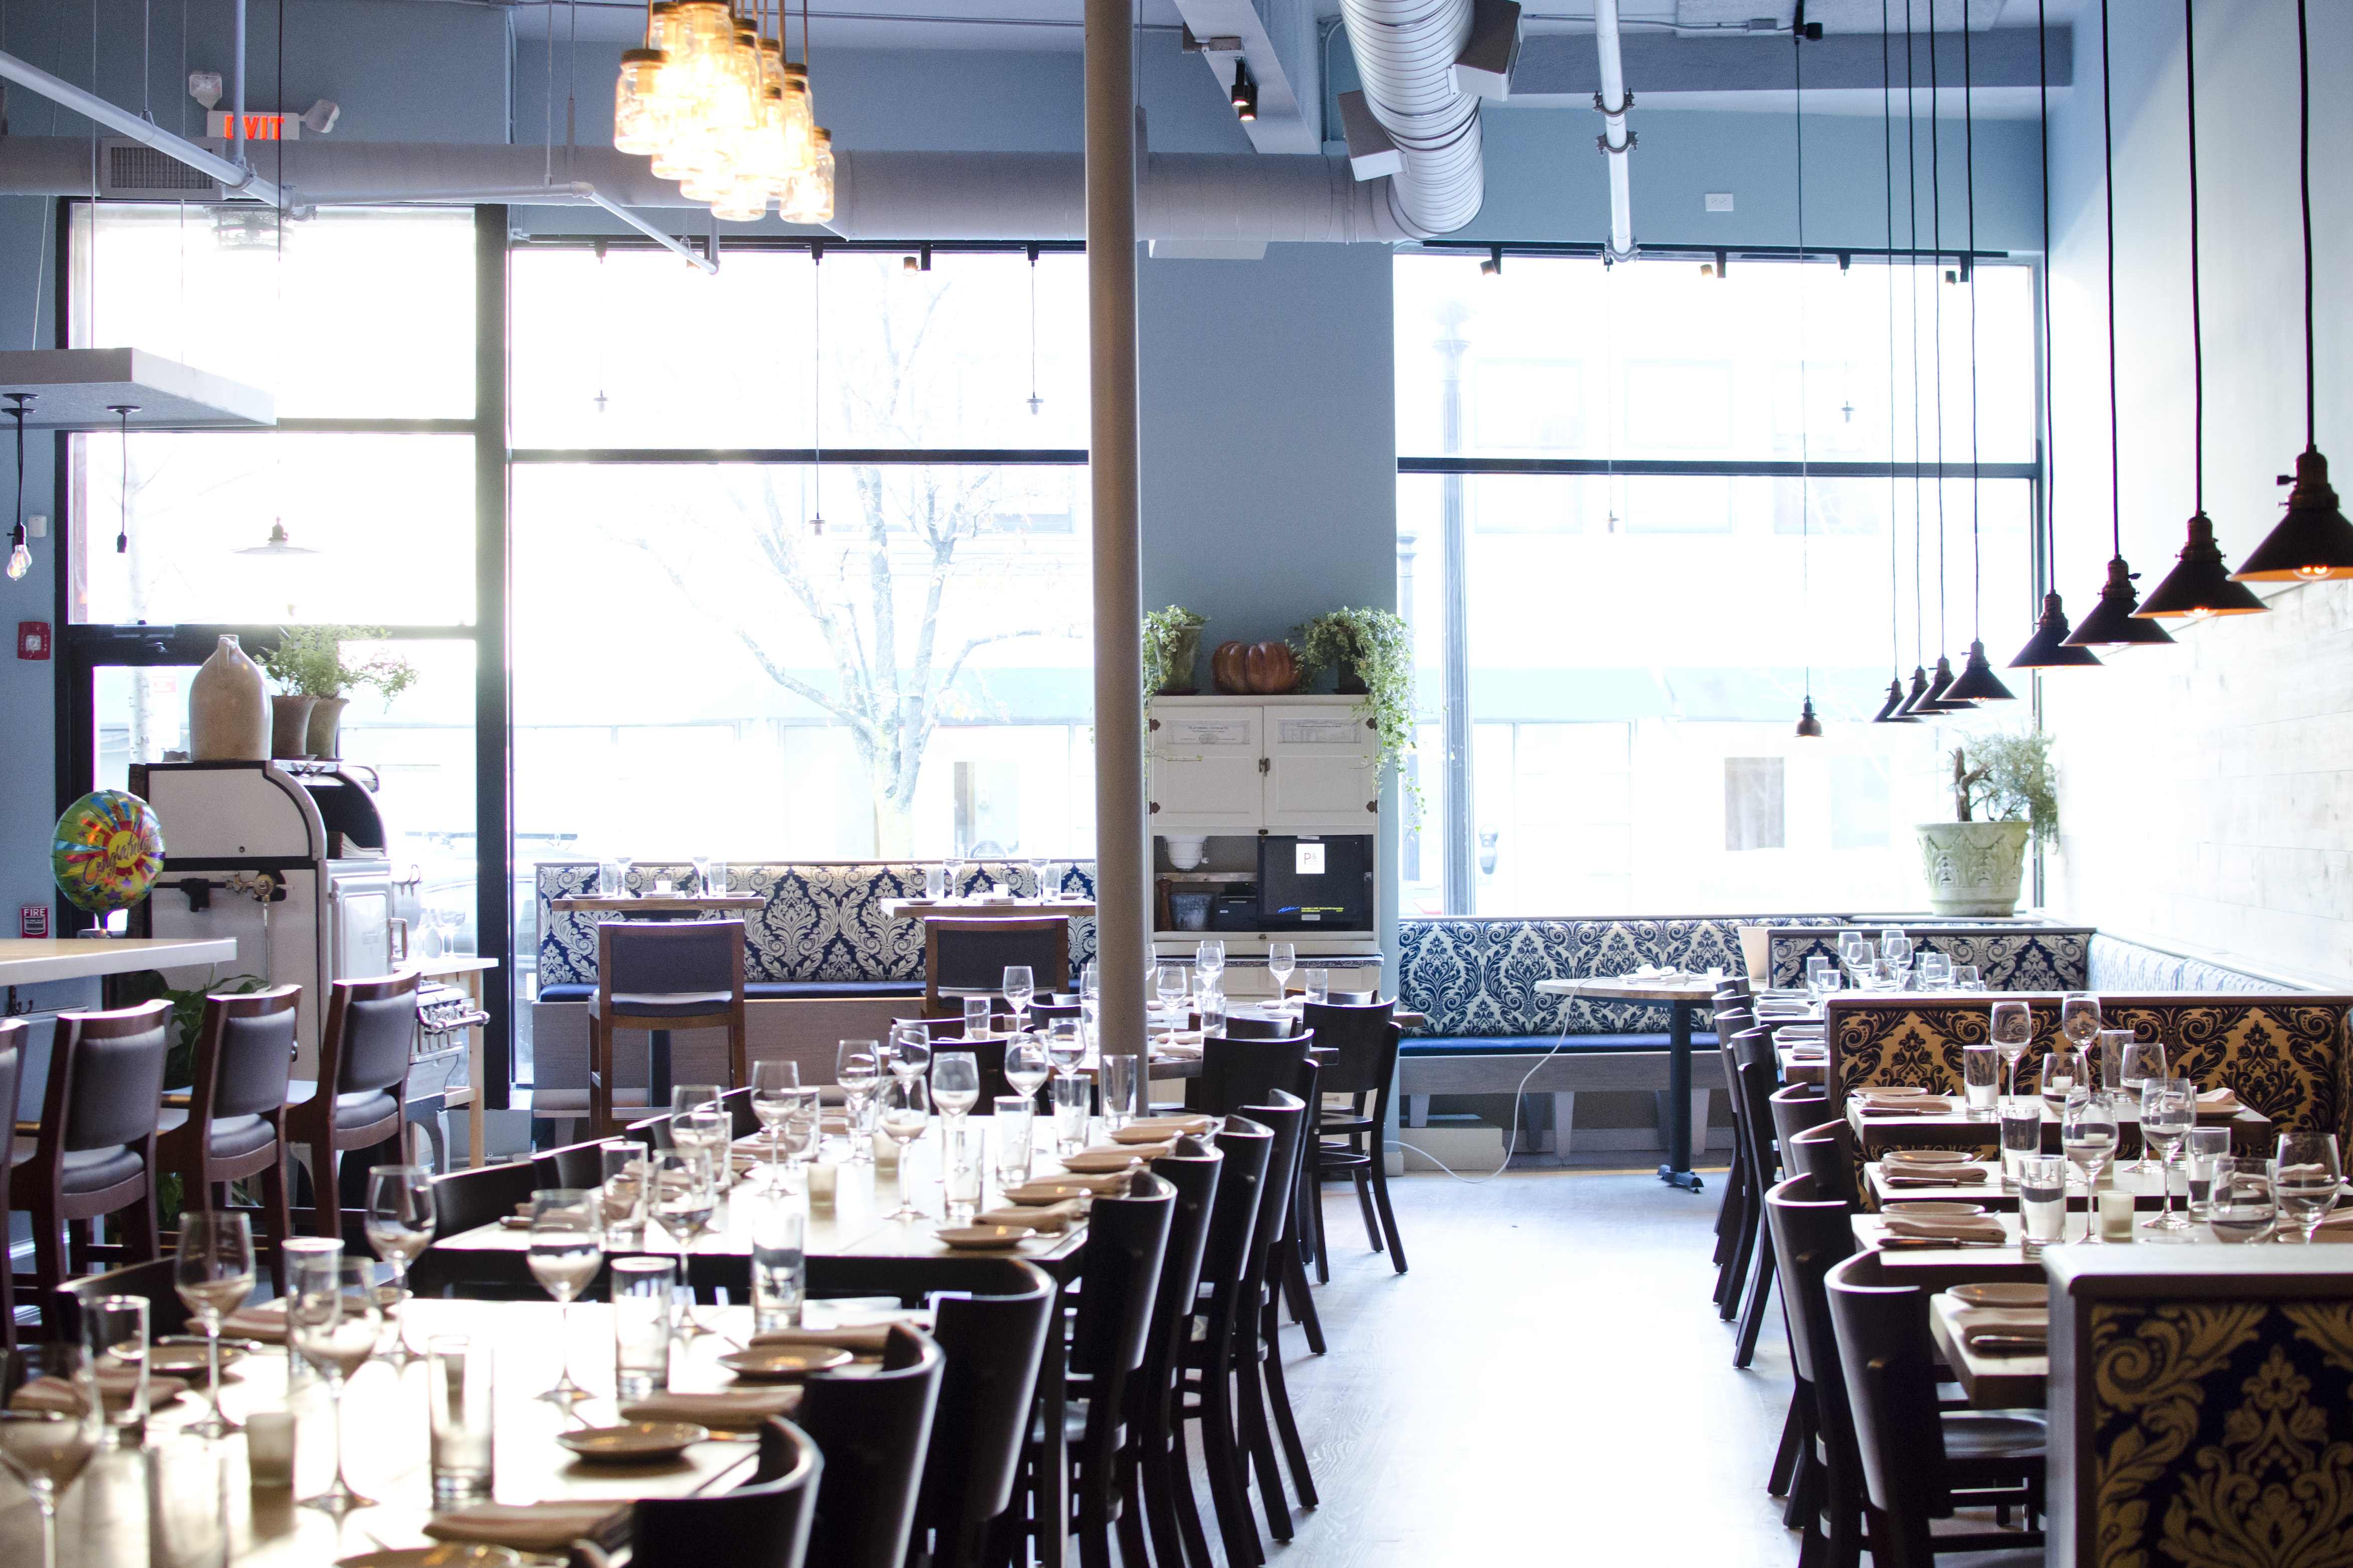 A restaurant interior is photographed during the day, toward the large front windows, lit up by sun. The walls are light blue; the space is rustic but polished.